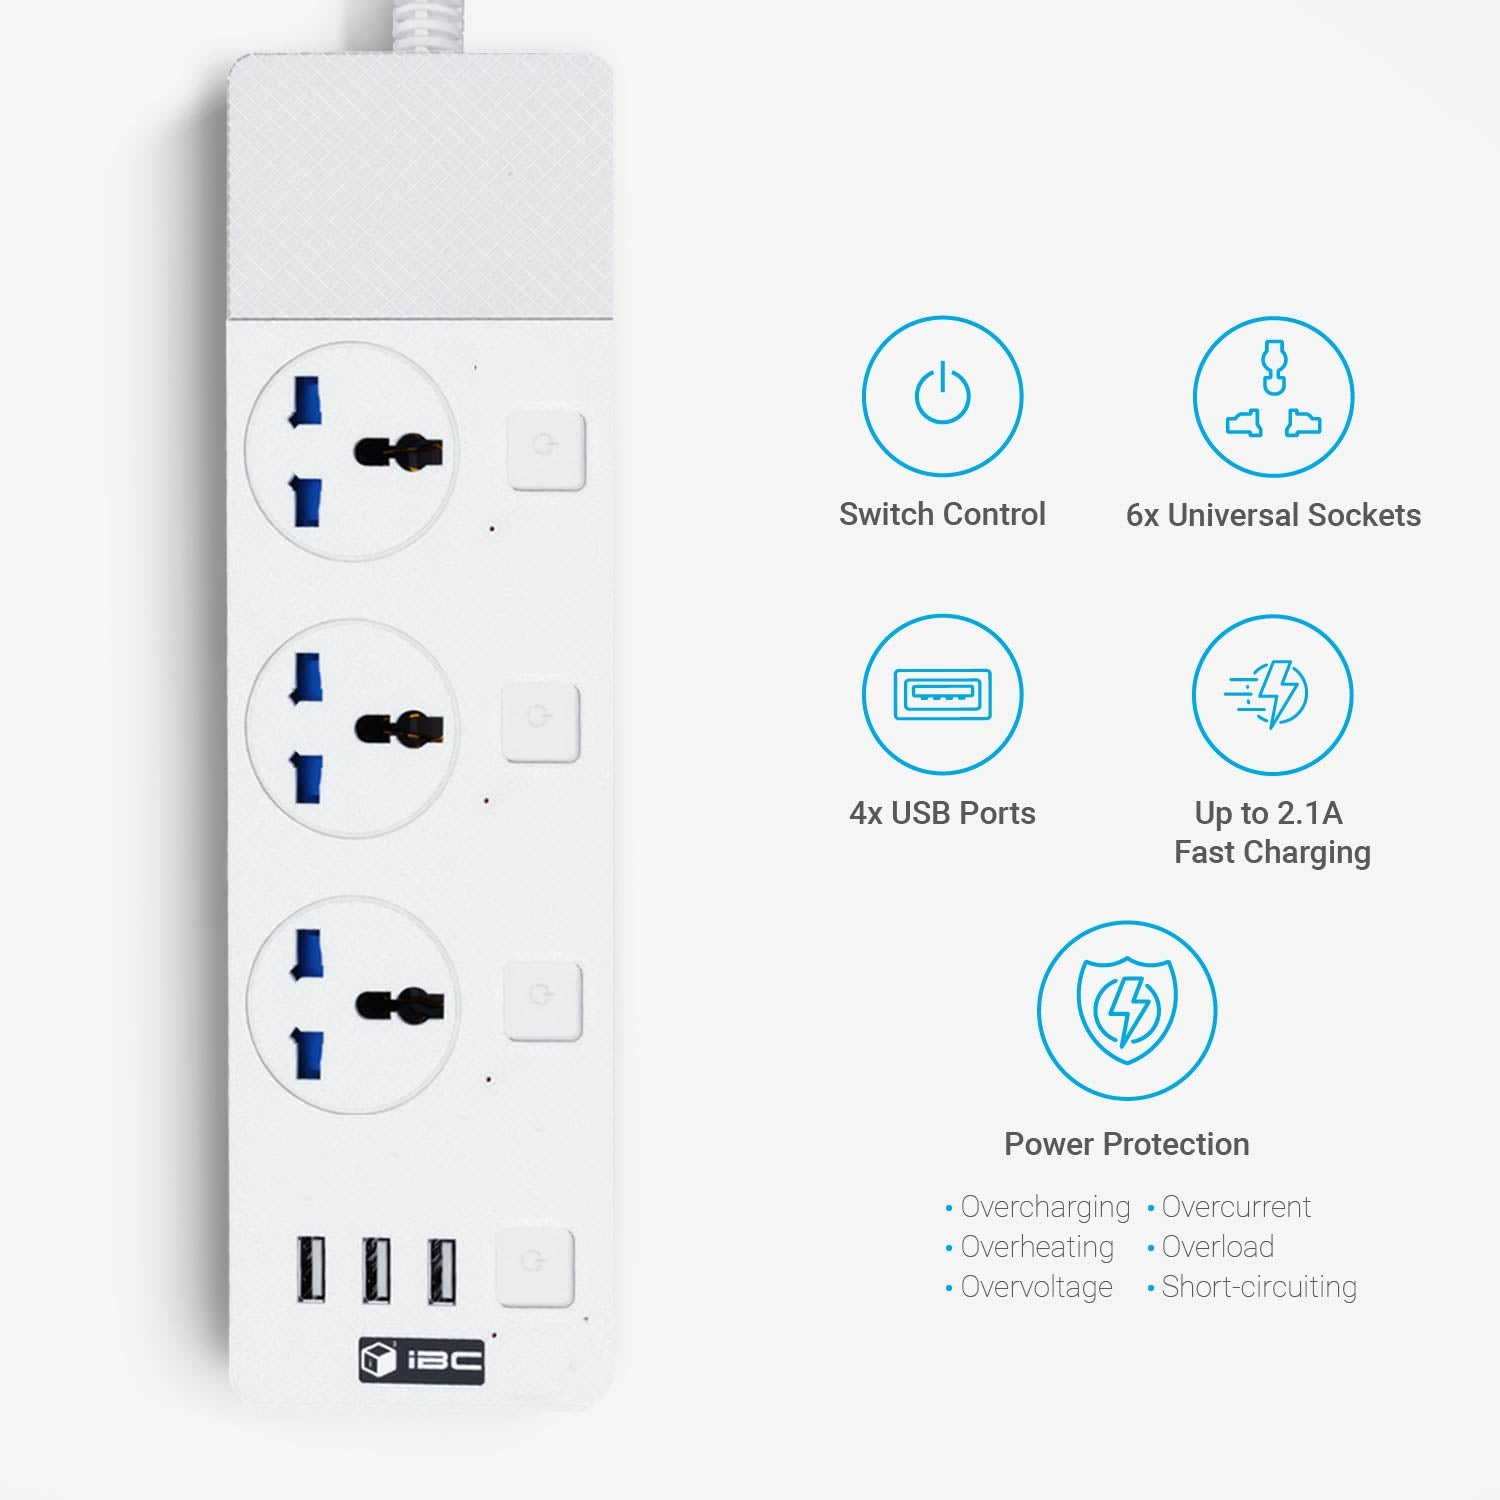 iBlockCube - Extension Lead with USB Ports 3 Way Outlets 3 Ports Surge Protection Power Strip Universal Charging Socket with 2 Meter Bold Extension Cord-White Color